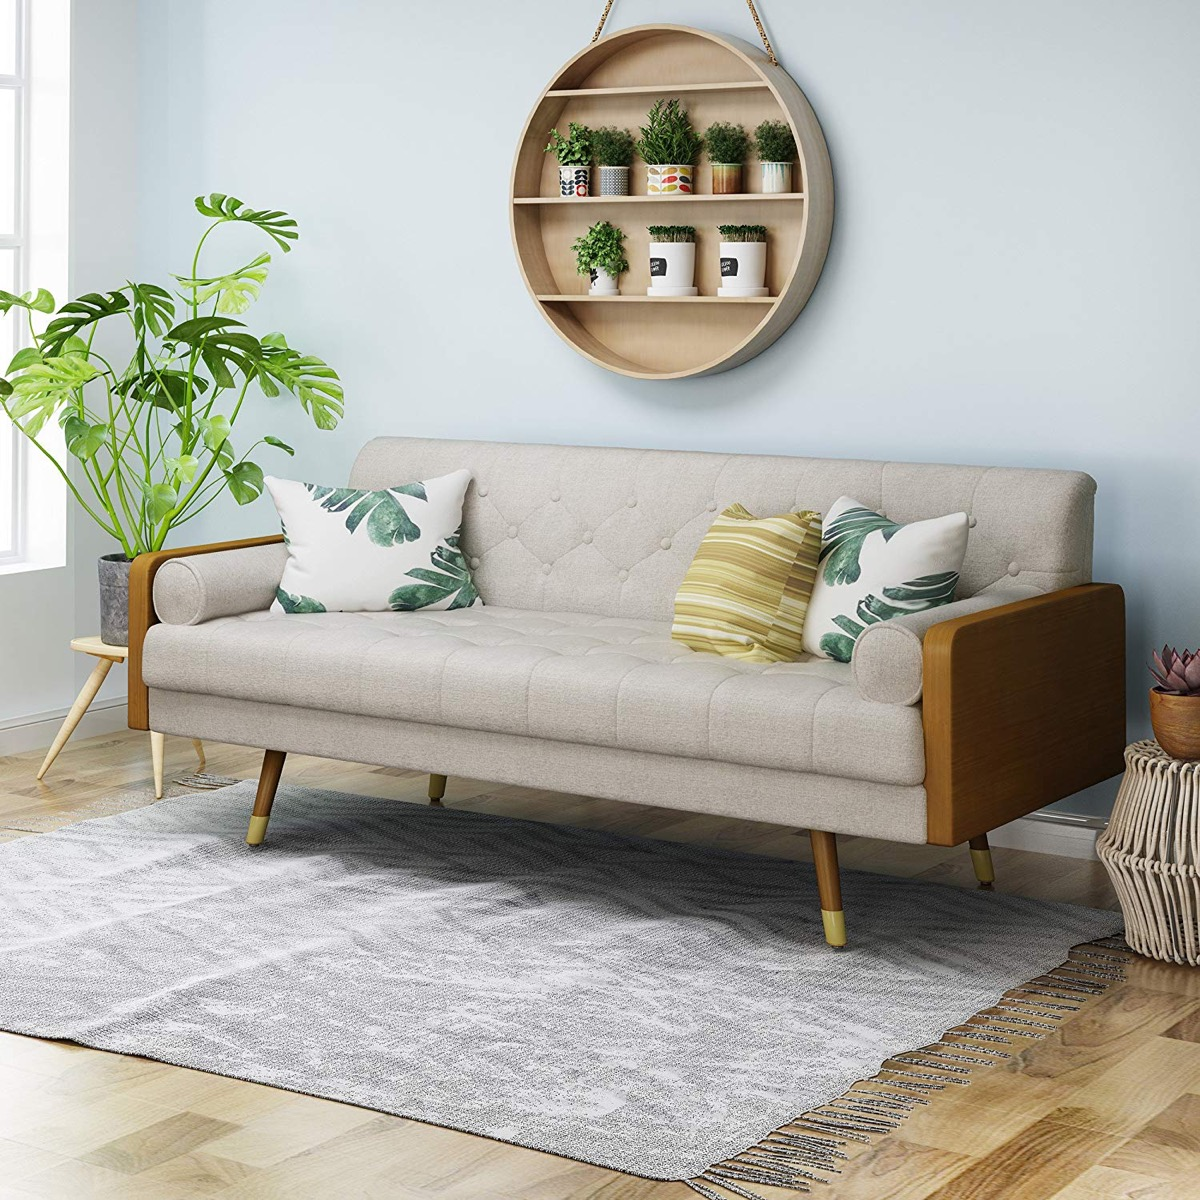 mid-century-modern-sofa-with-wood-body-and-tufted-grey-upholstery